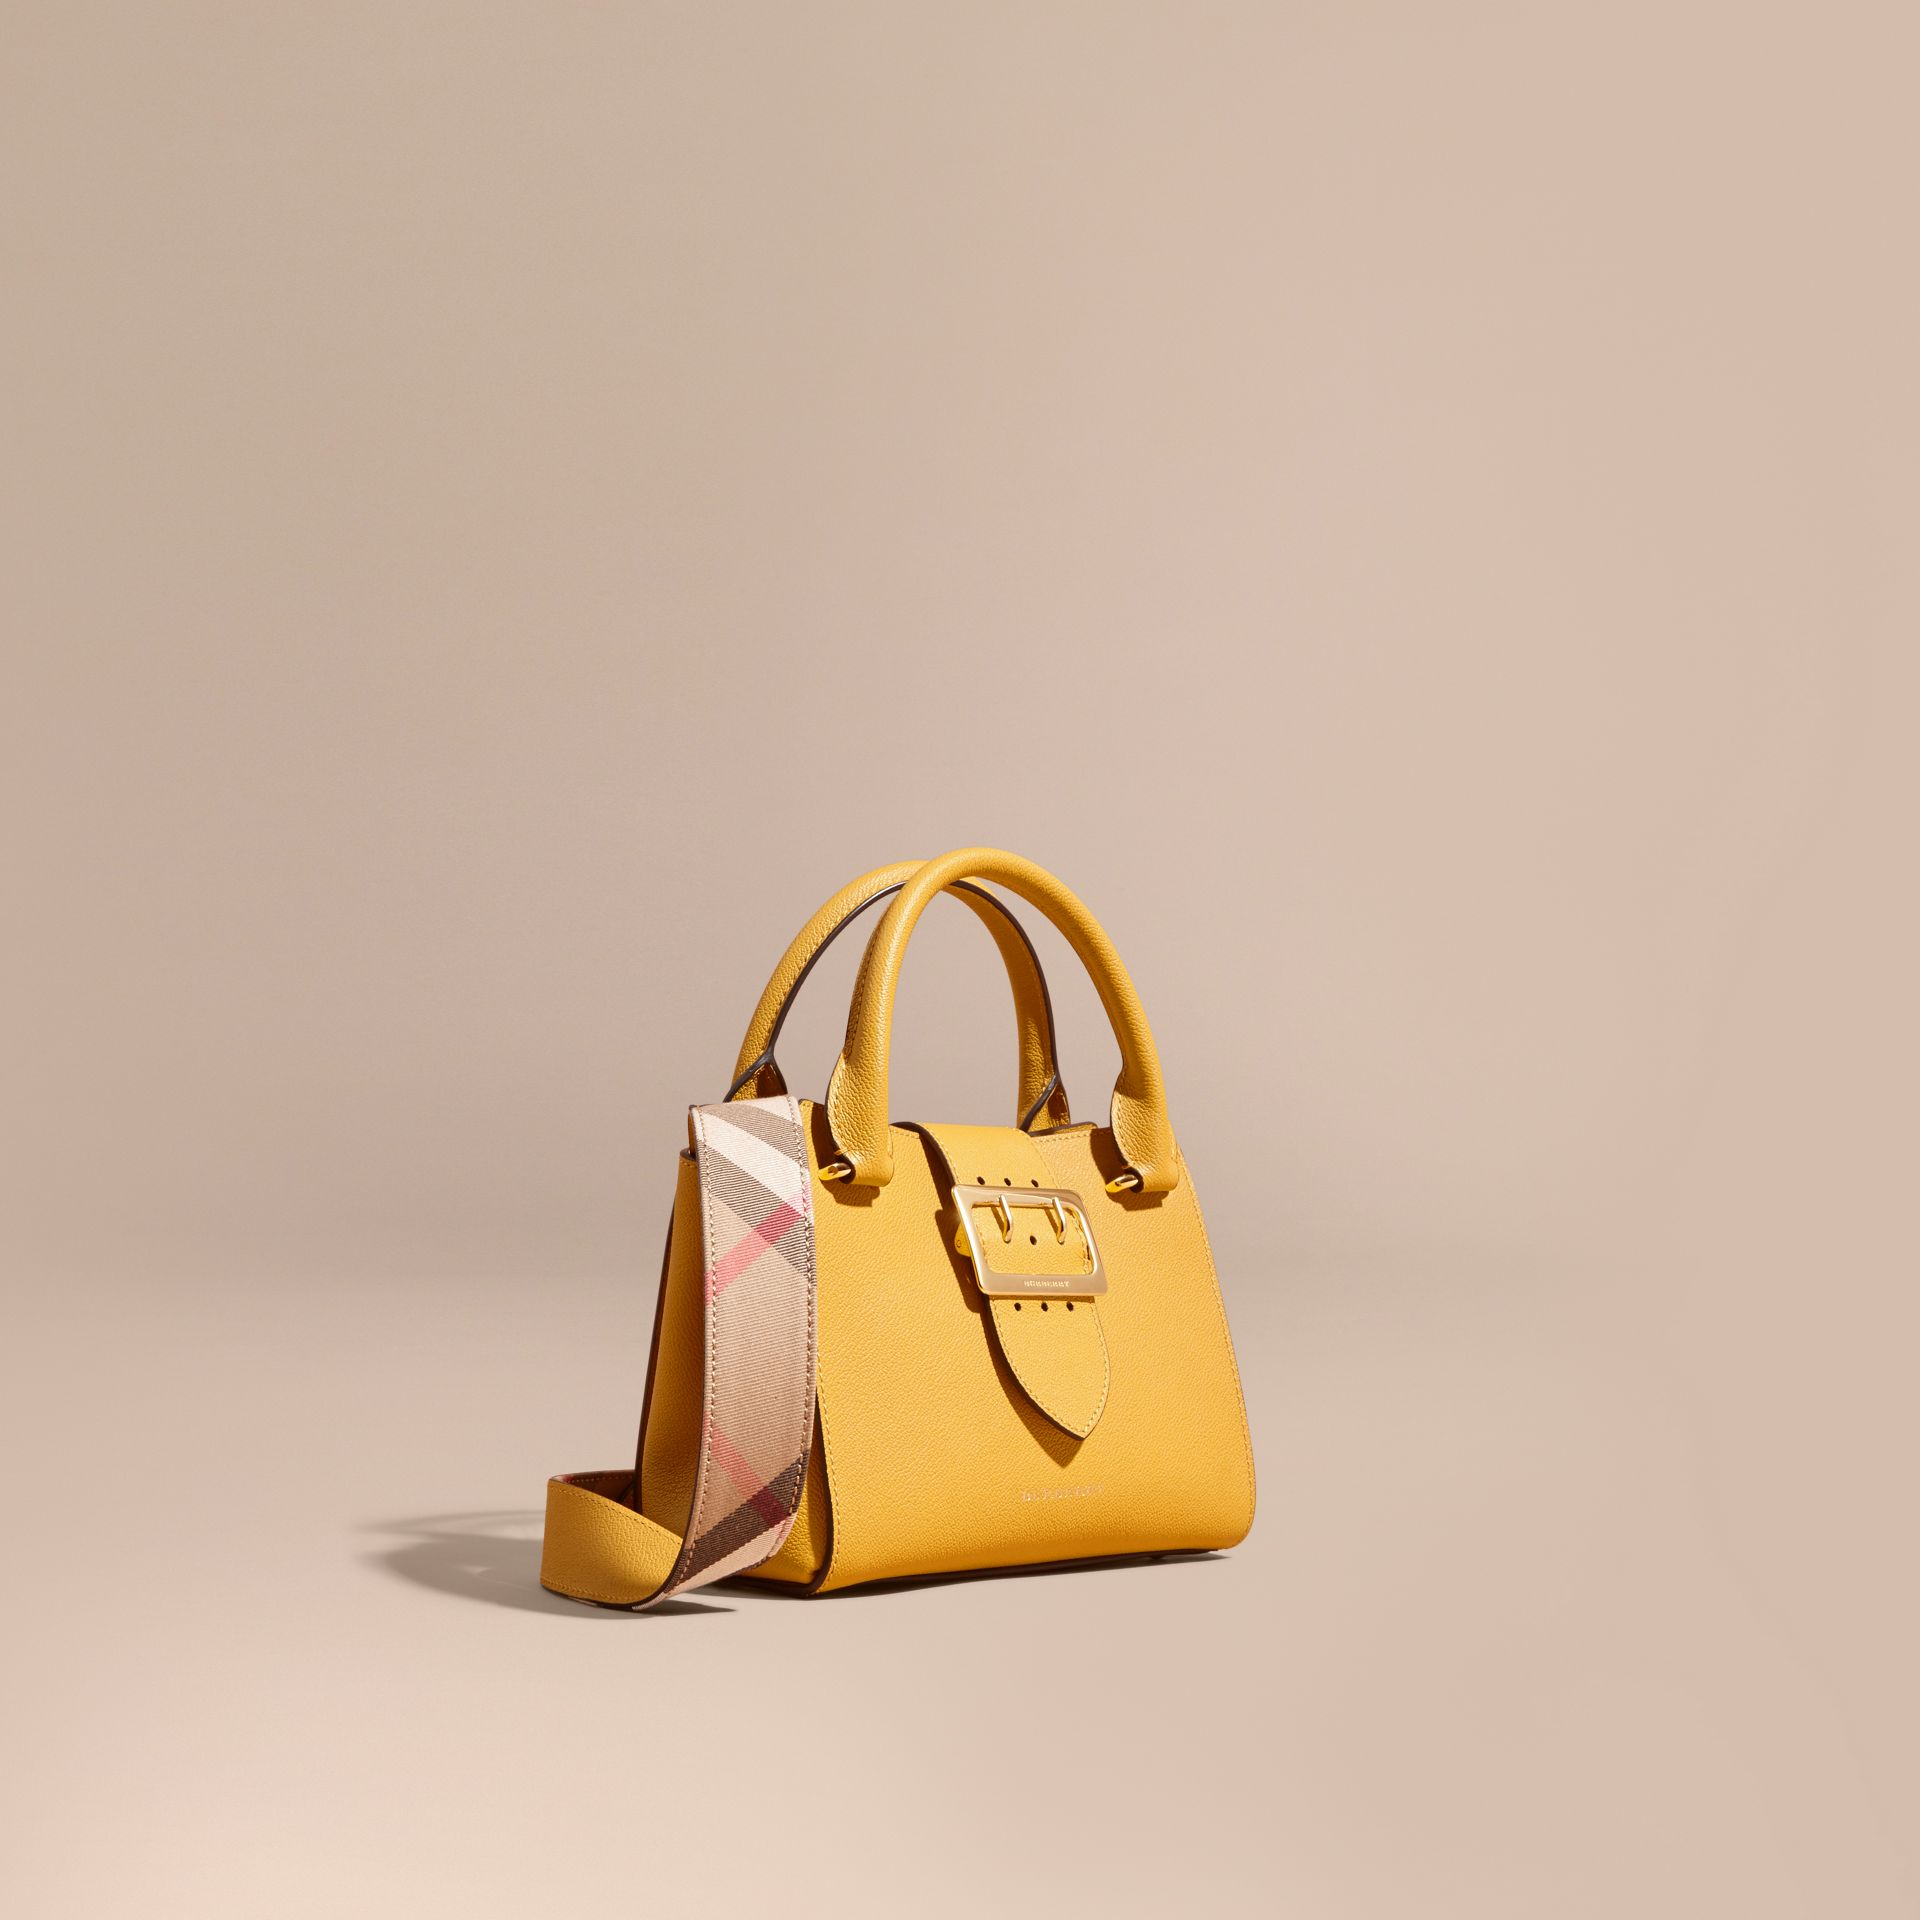 The Small Buckle Tote in Grainy Leather in Bright Straw - Women | Burberry Singapore - gallery image 1